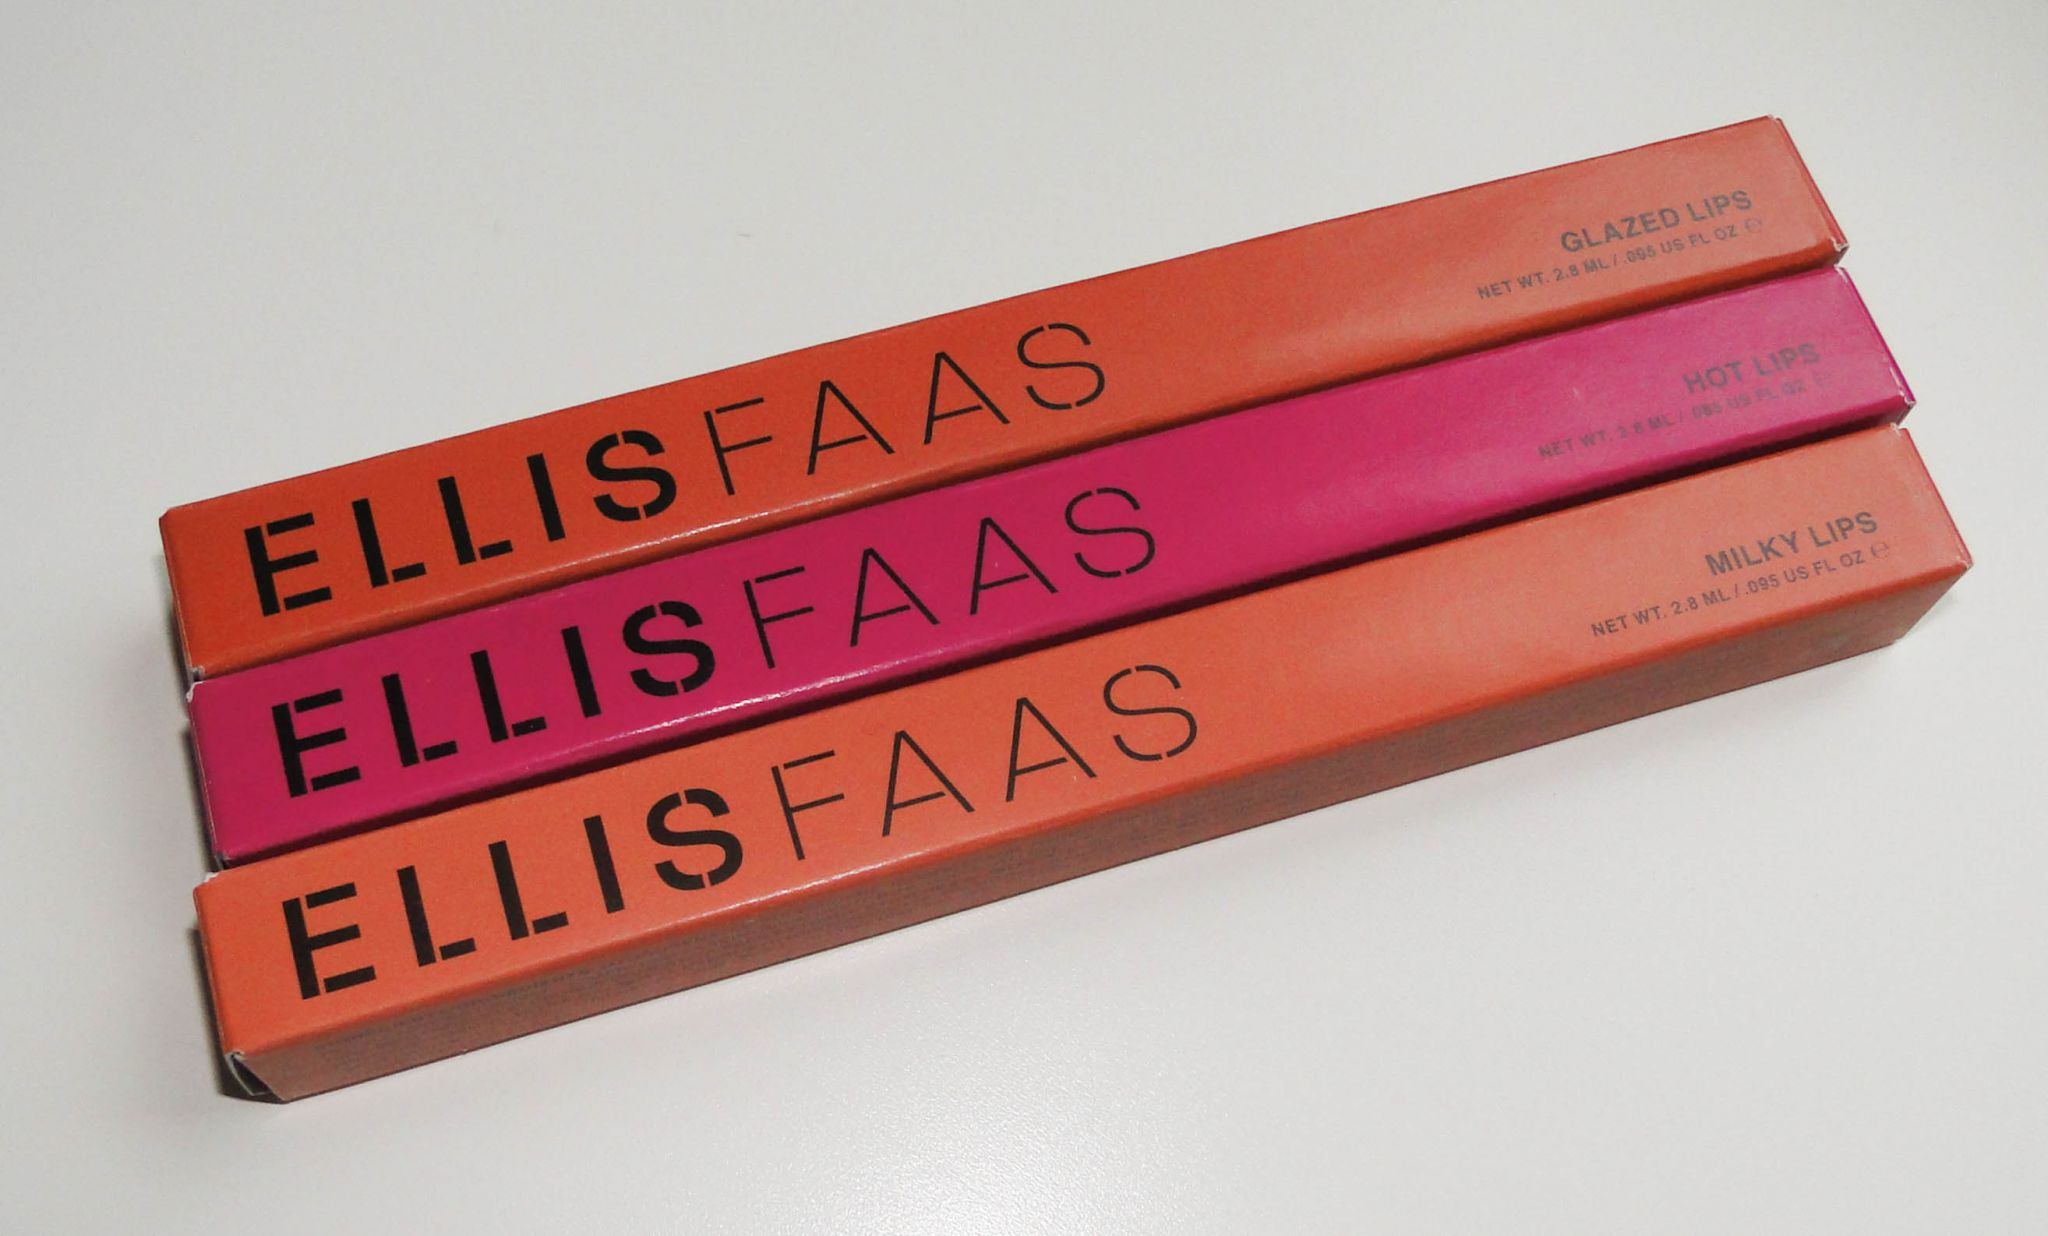 Ellis Faas Summer Set of 3 Lip Colours - Net a Porter